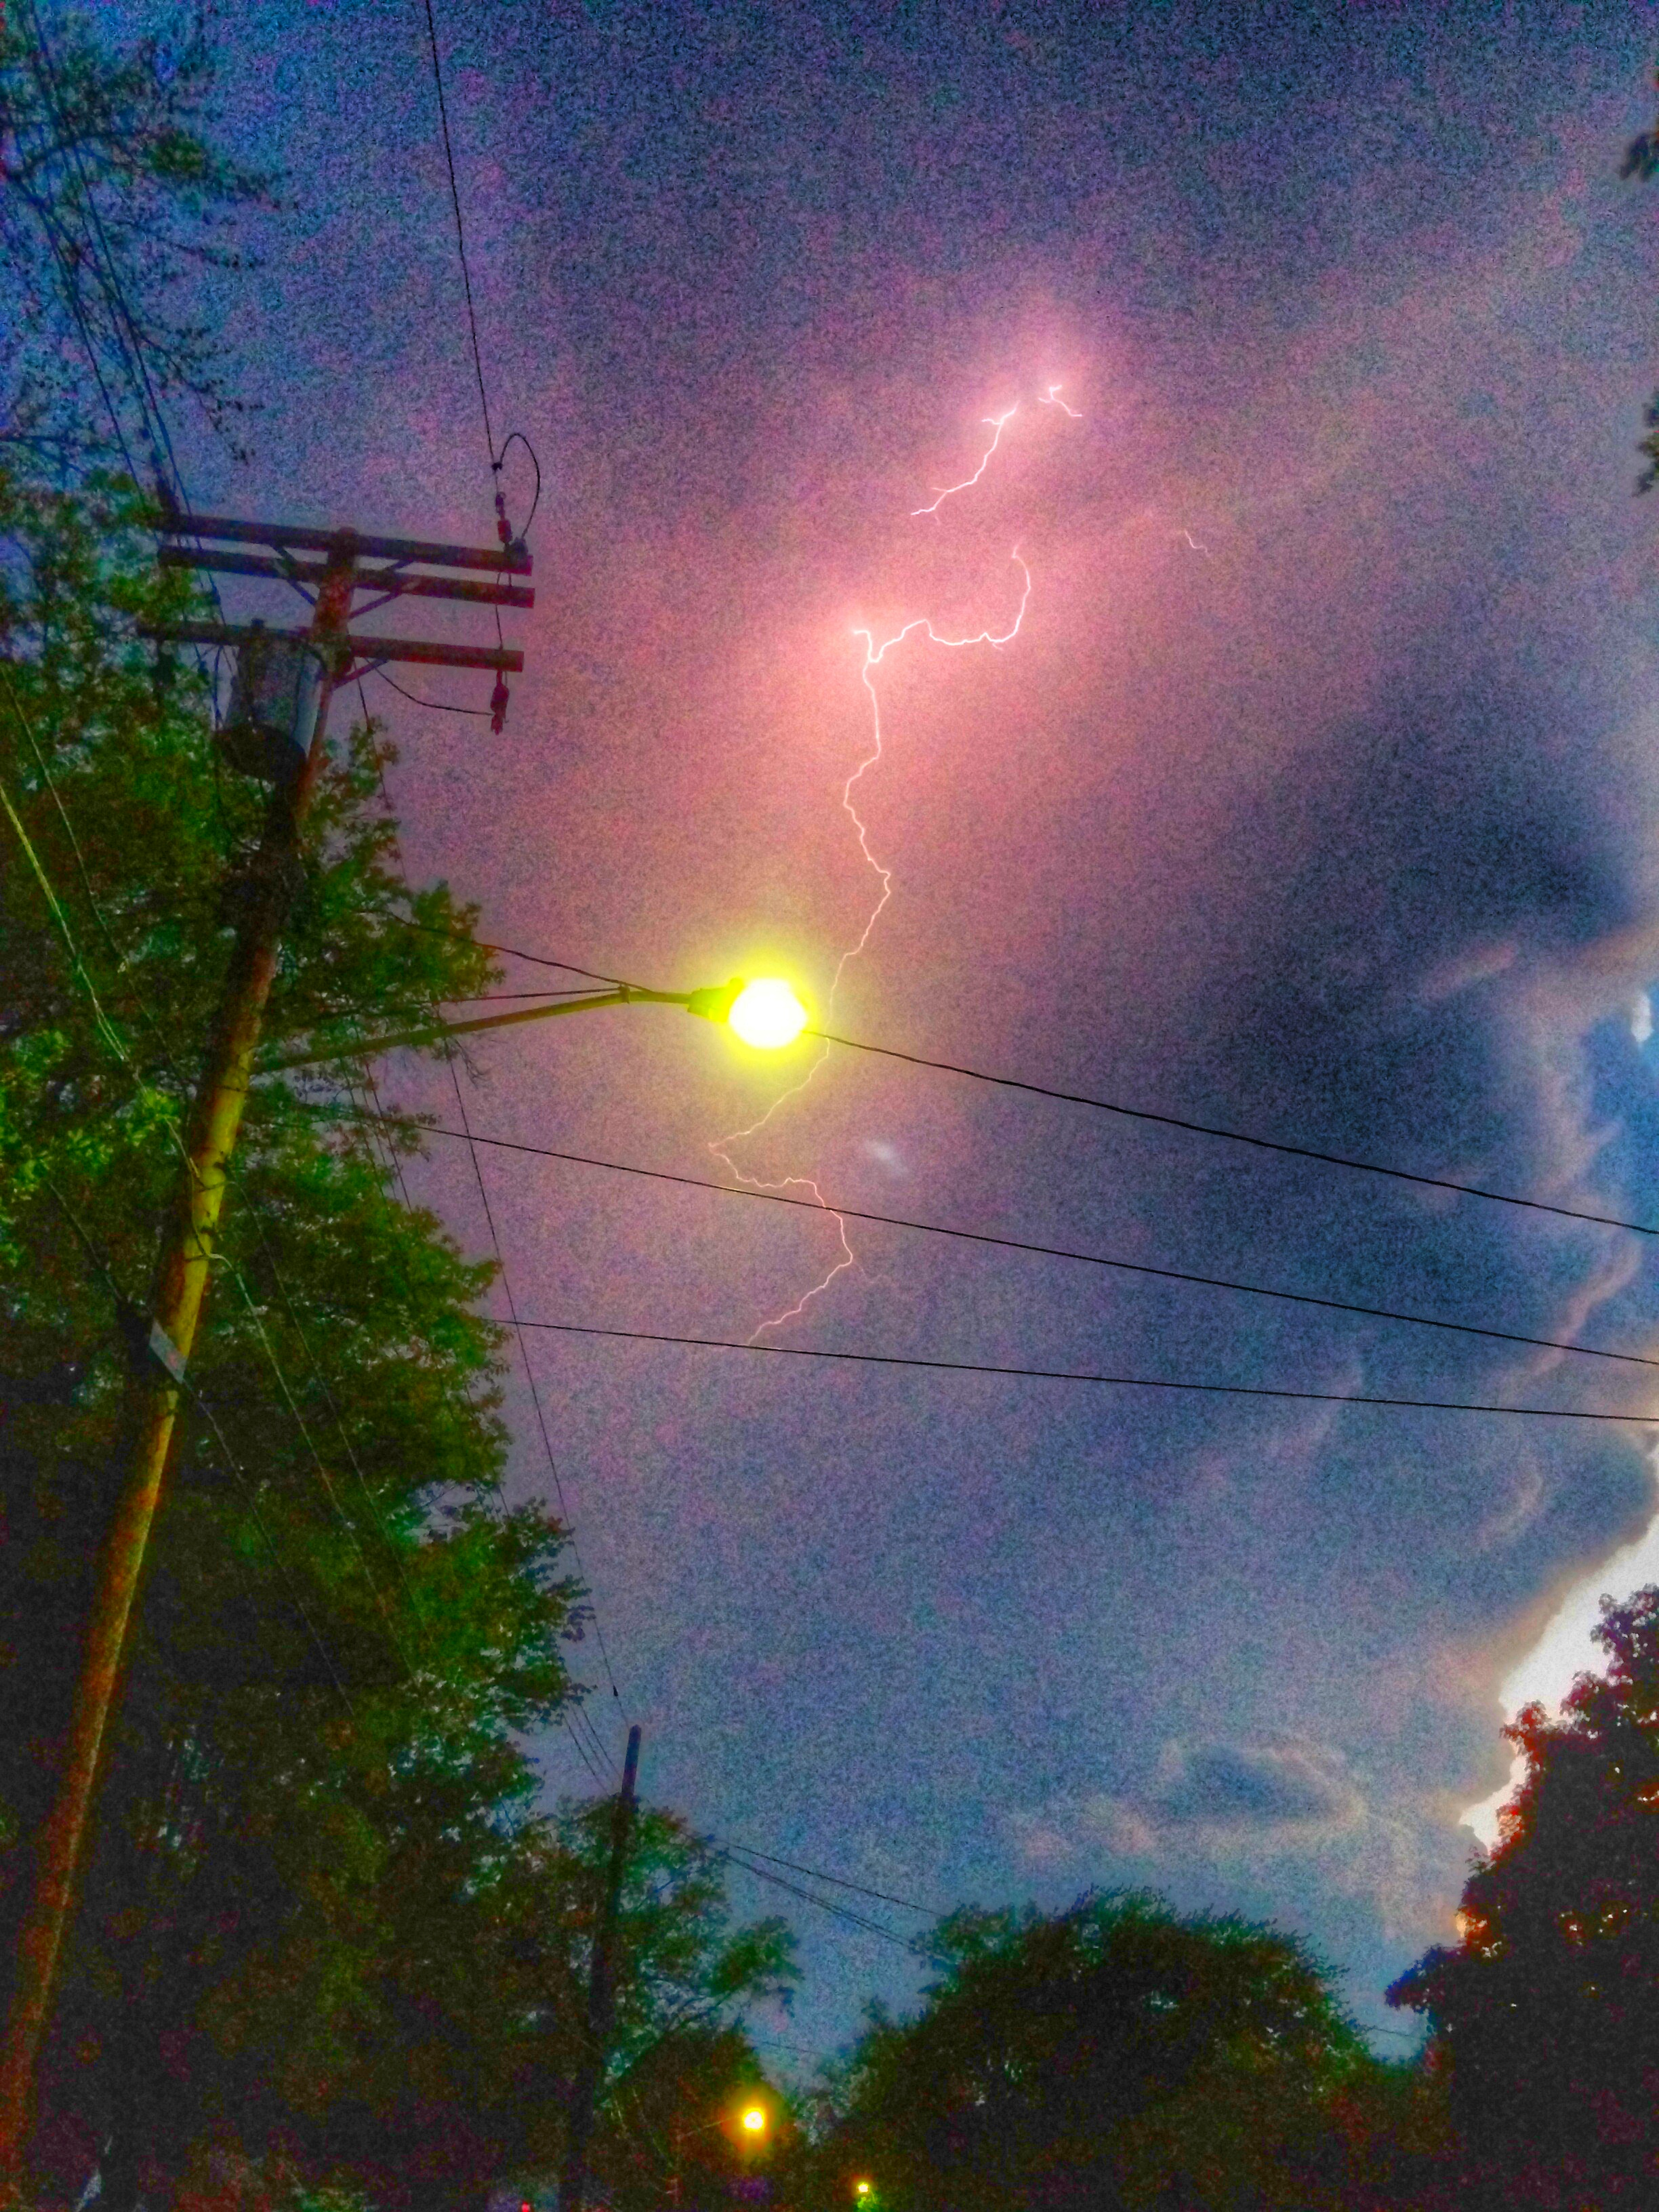 Lightning In The Sky - Taken 21-May-2014 - Cleveland, Ohio, USA